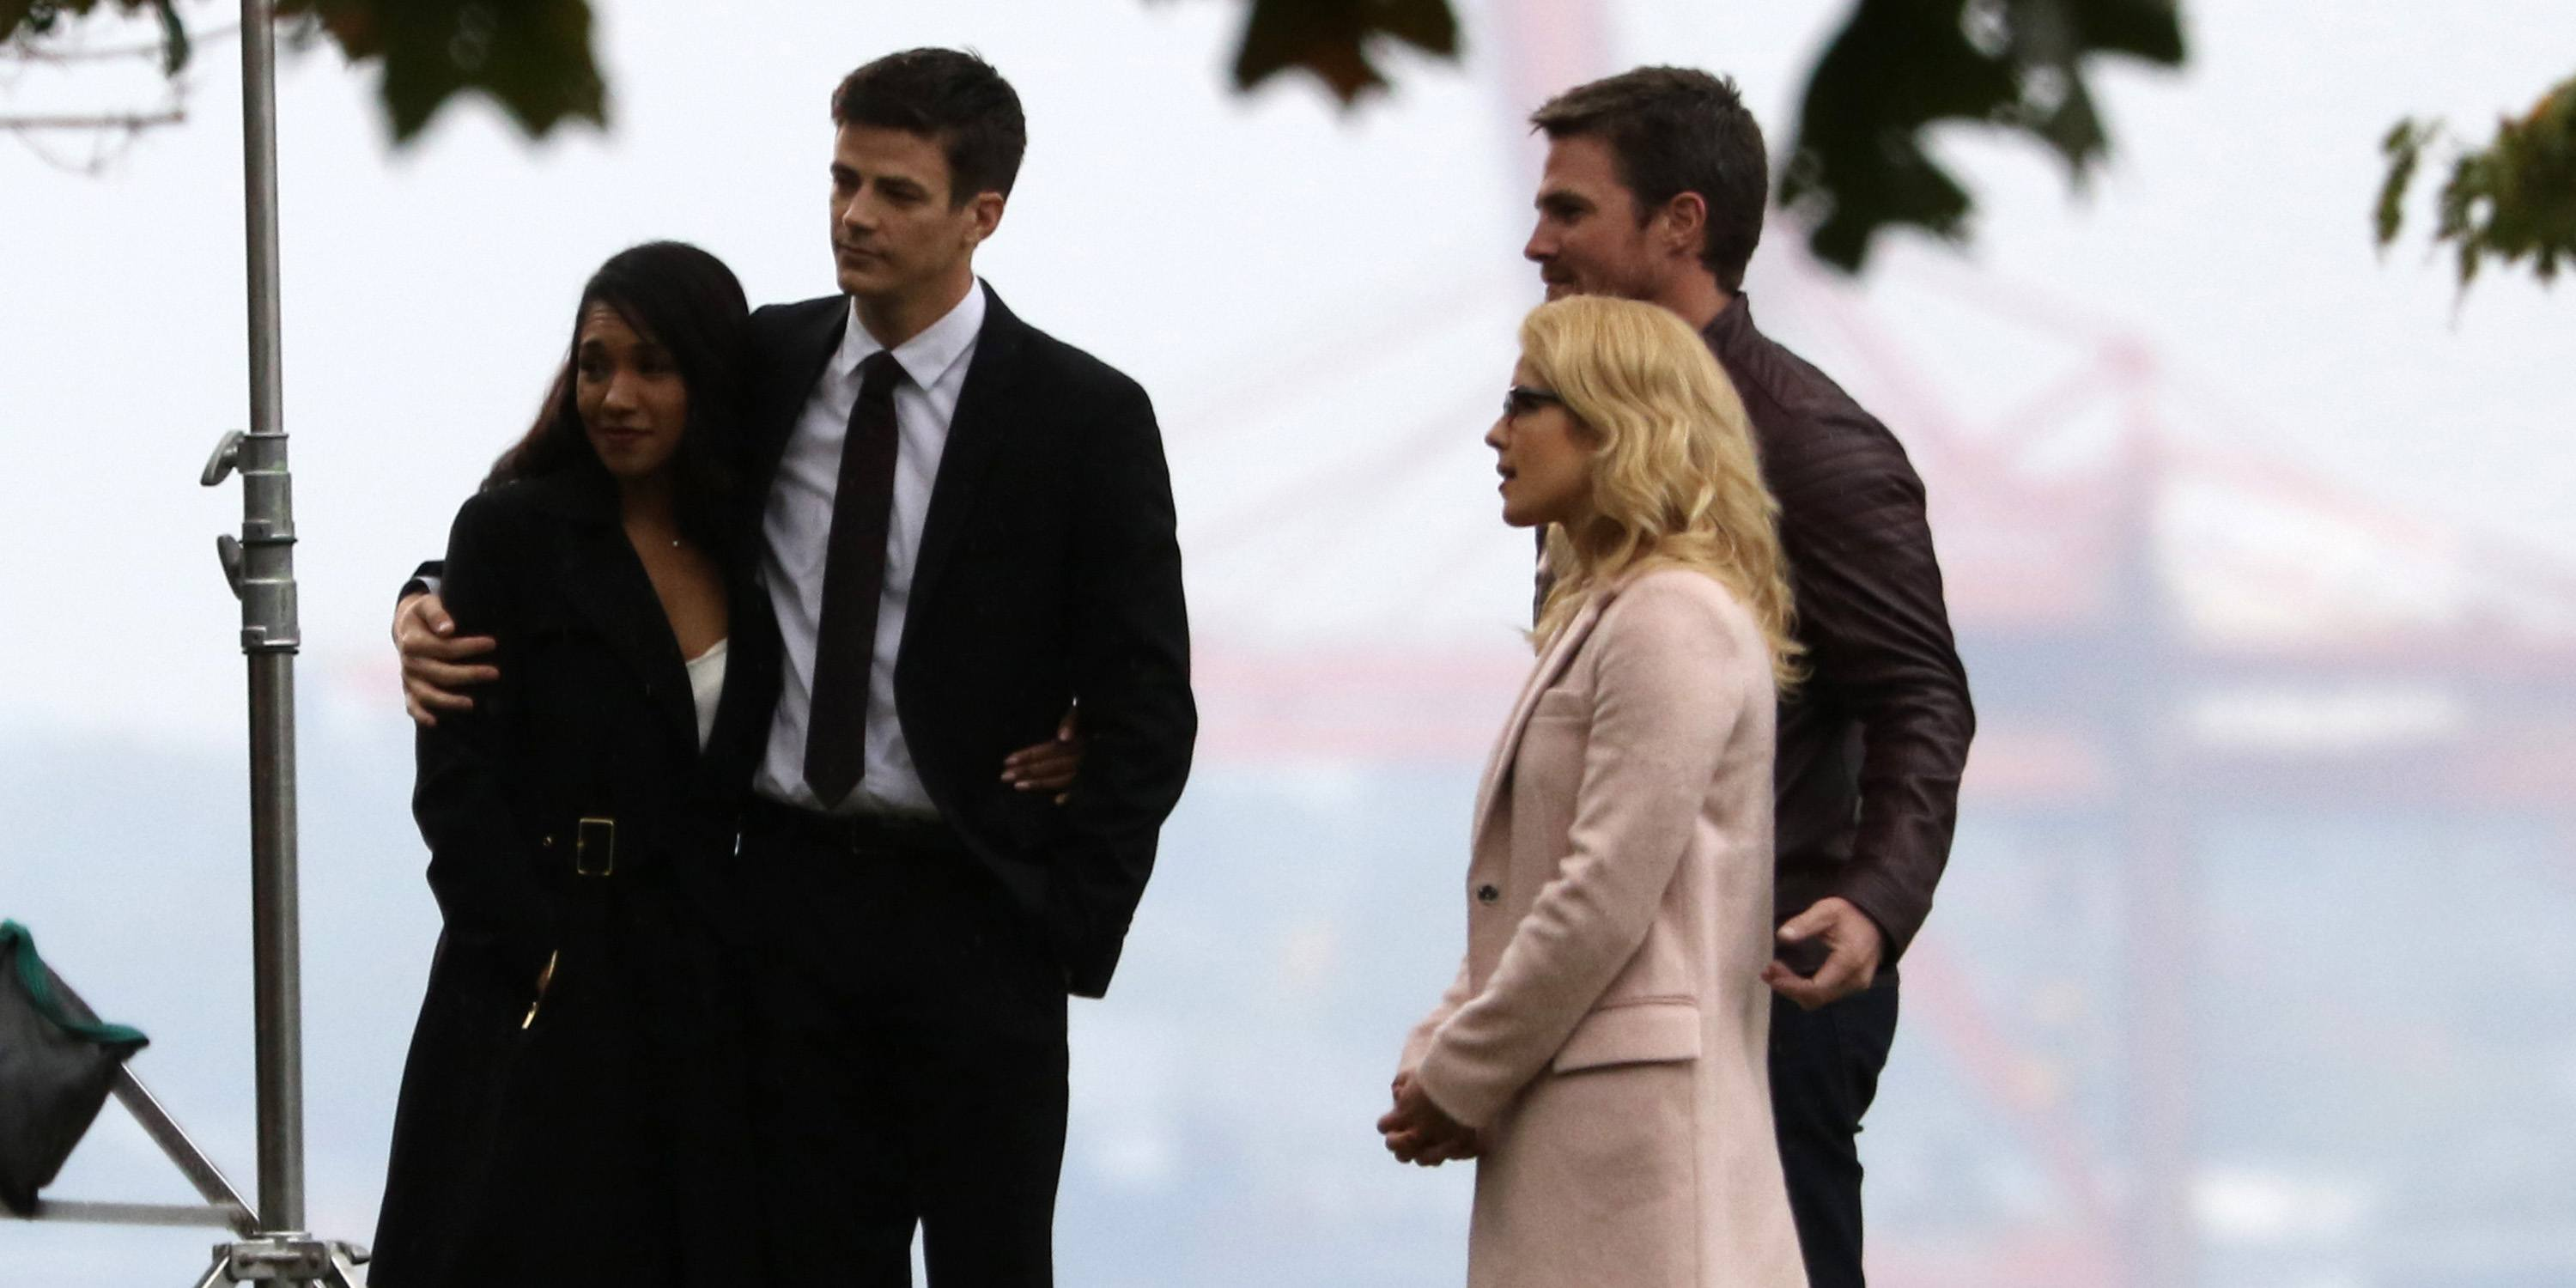 Arrowverse stars spotted gathering on Vancouver set for crossover funeral (PHOTOS)